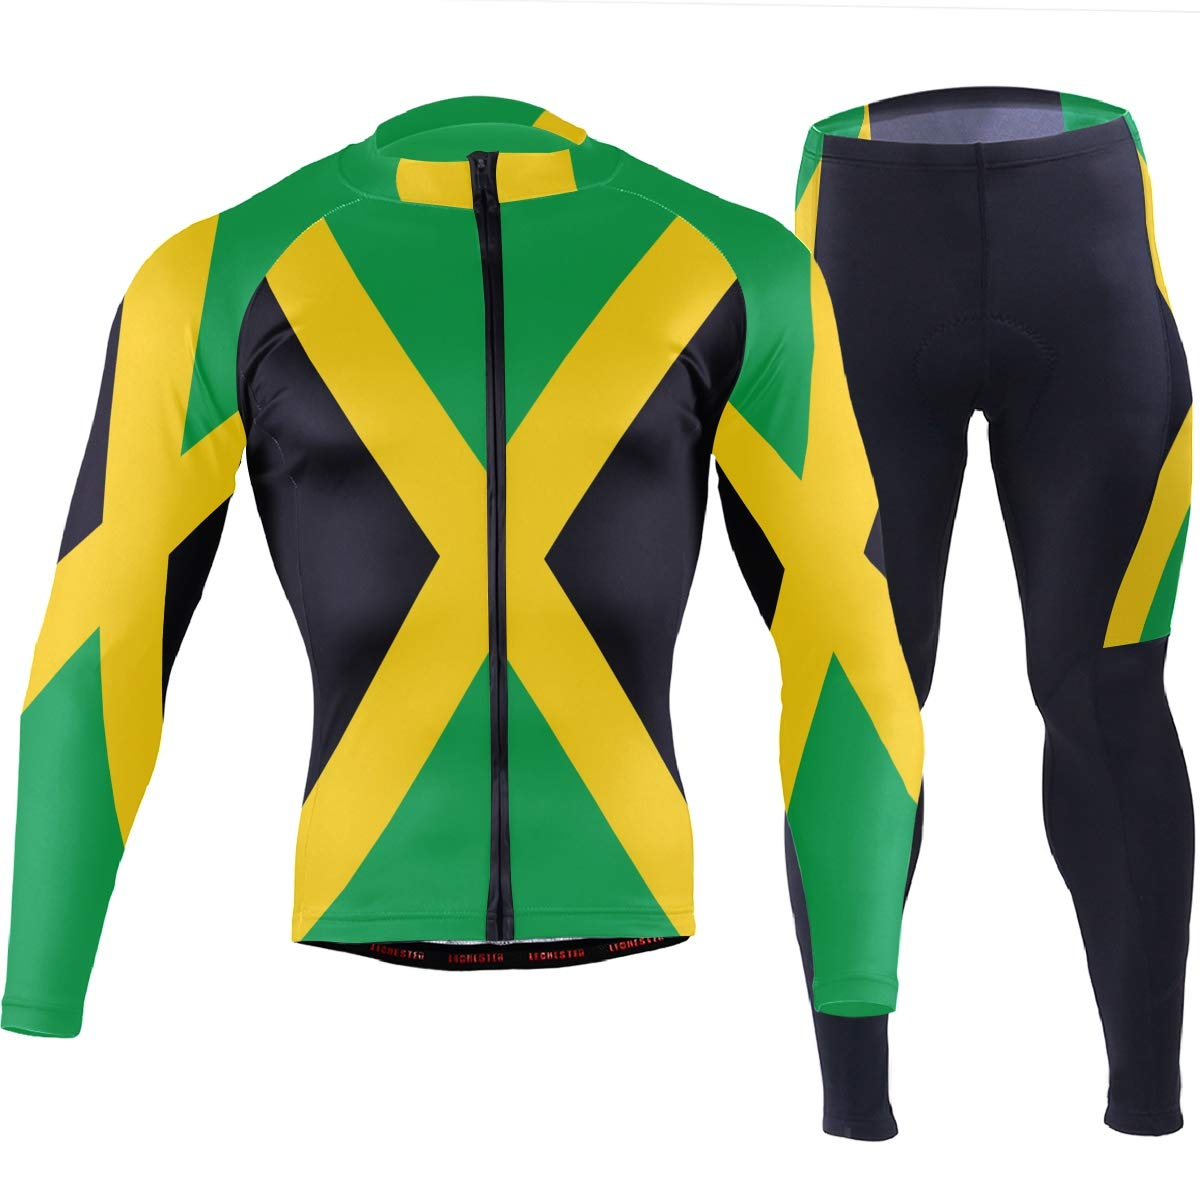 CHINEIN Men's Cycling Jersey Long Sleeve with 3 Rear Pockets Suit Jamaica Flag by CHINEIN